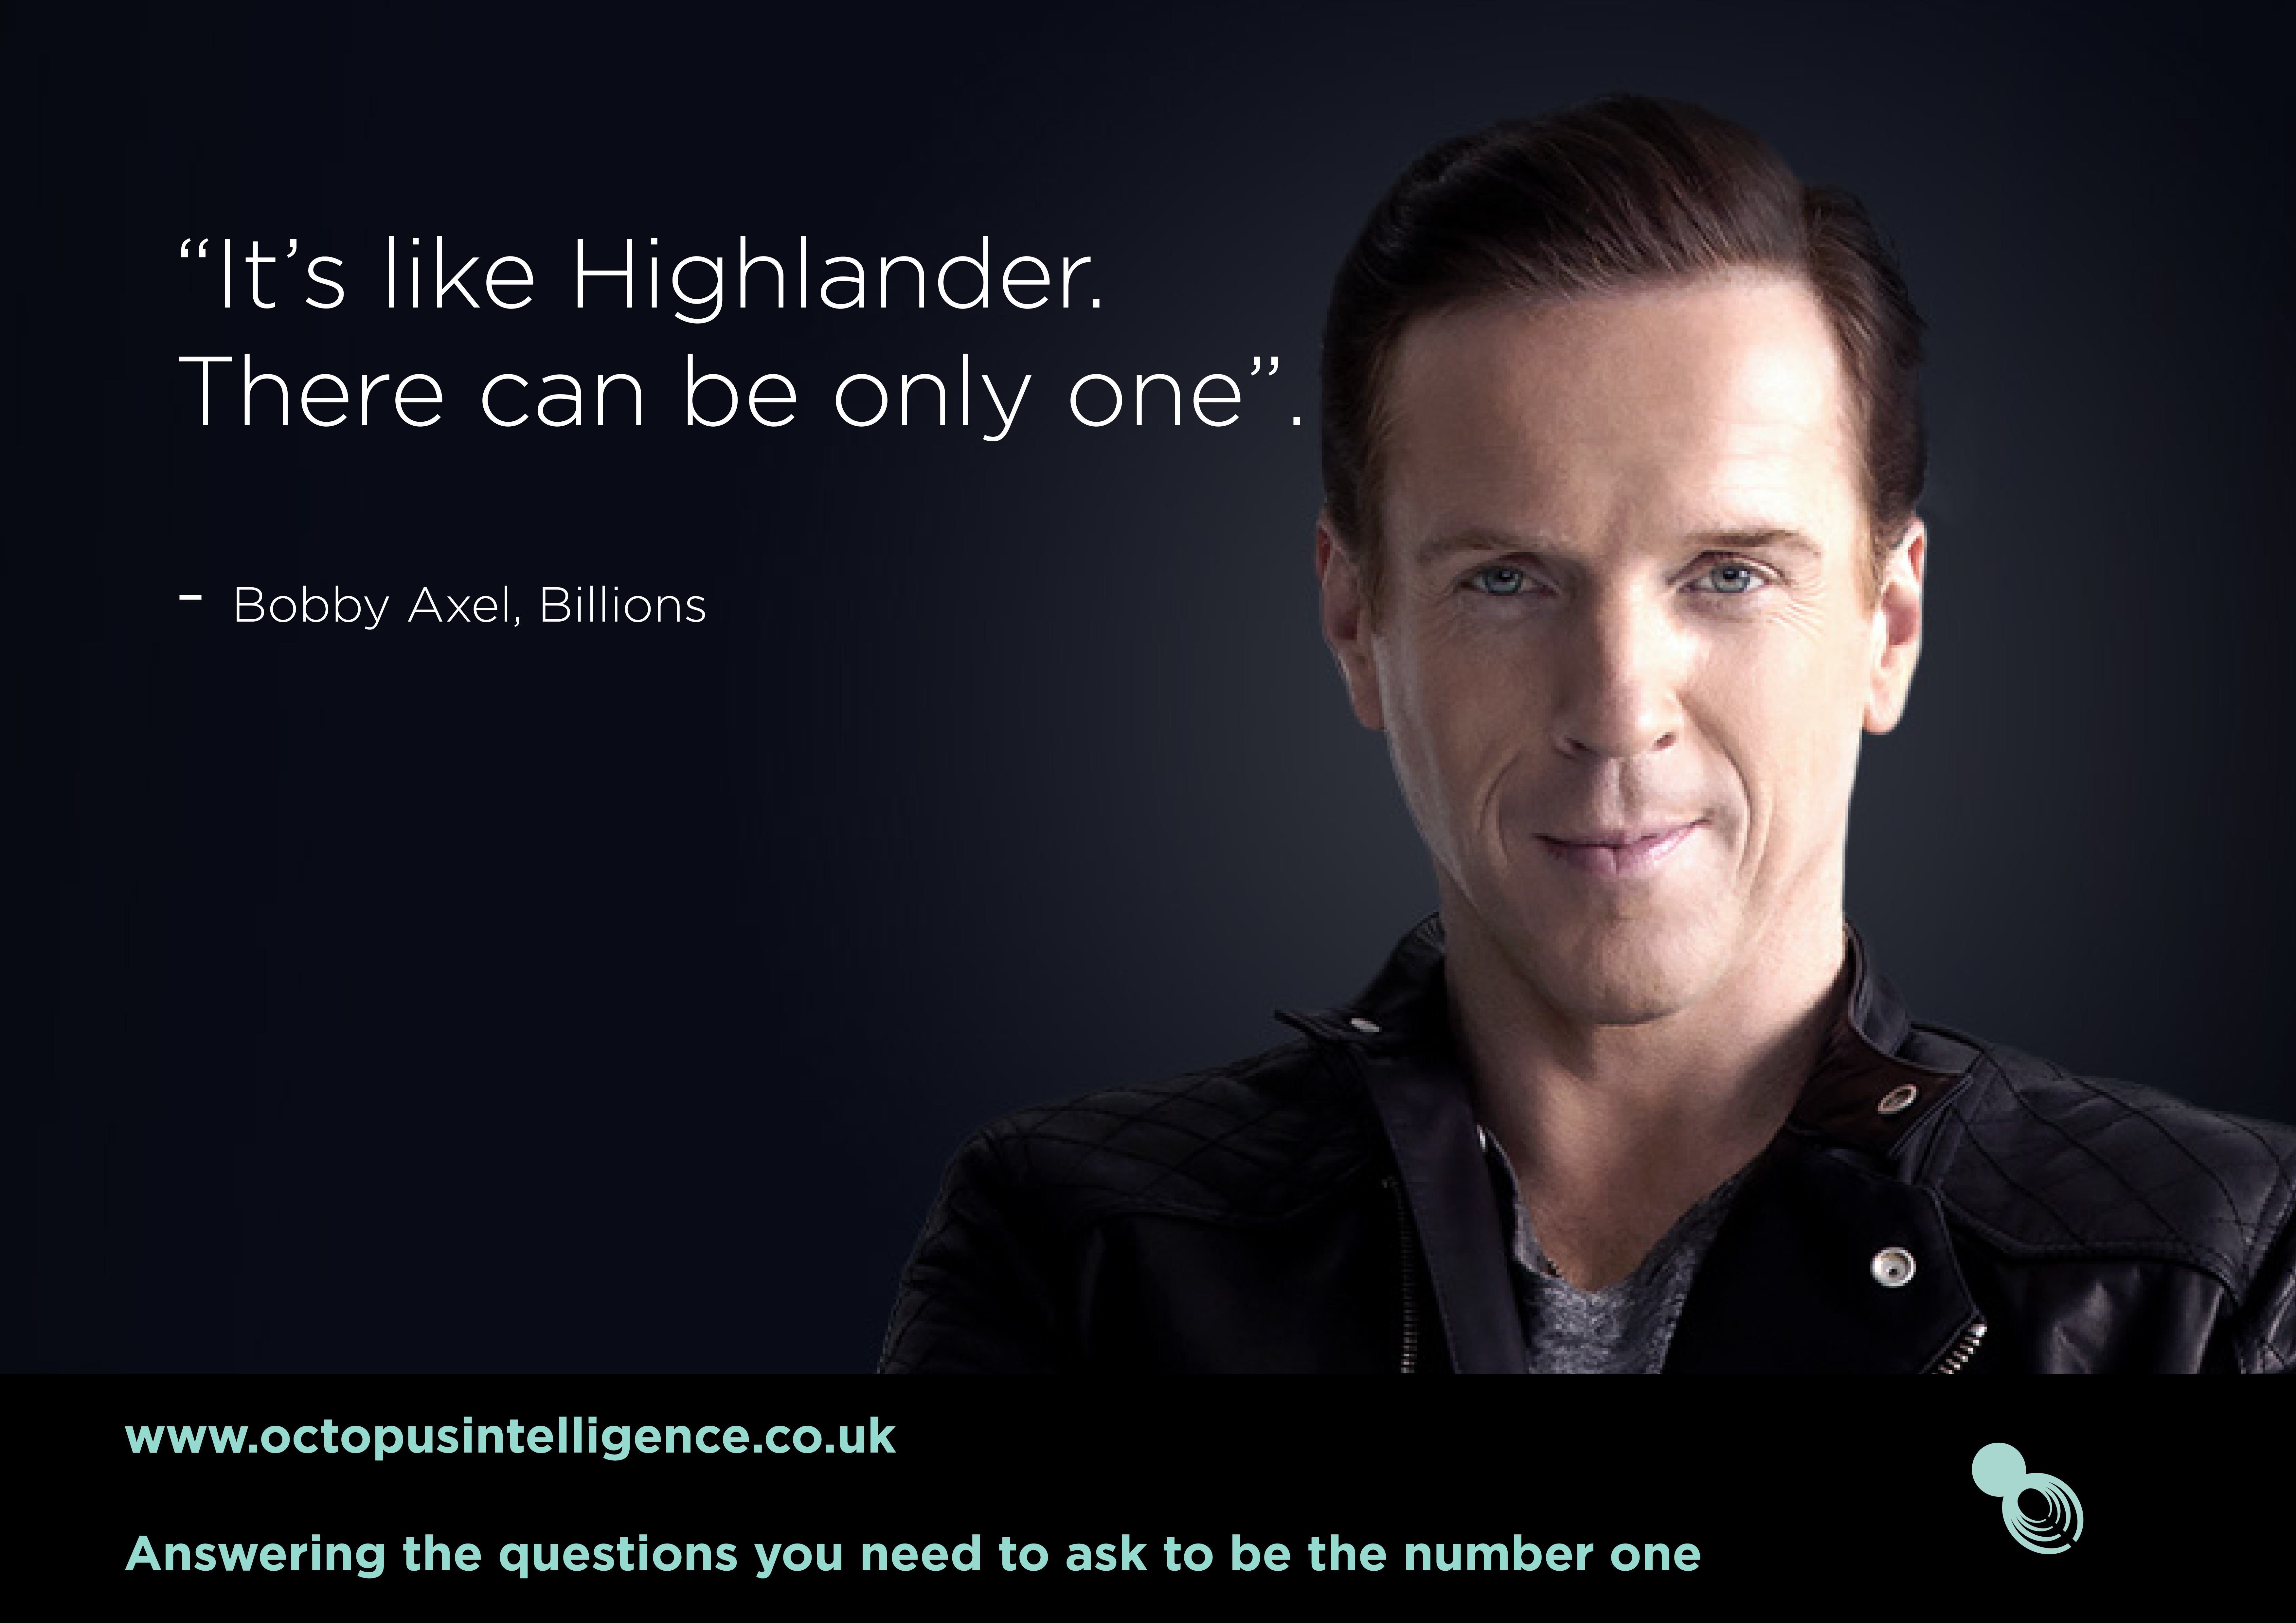 It S Like Highlander There Can Be Only One Bobby Axel Billions Ci Billions Smarterbusiness Tech Sbtl17 This Or That Questions Highlander Number One